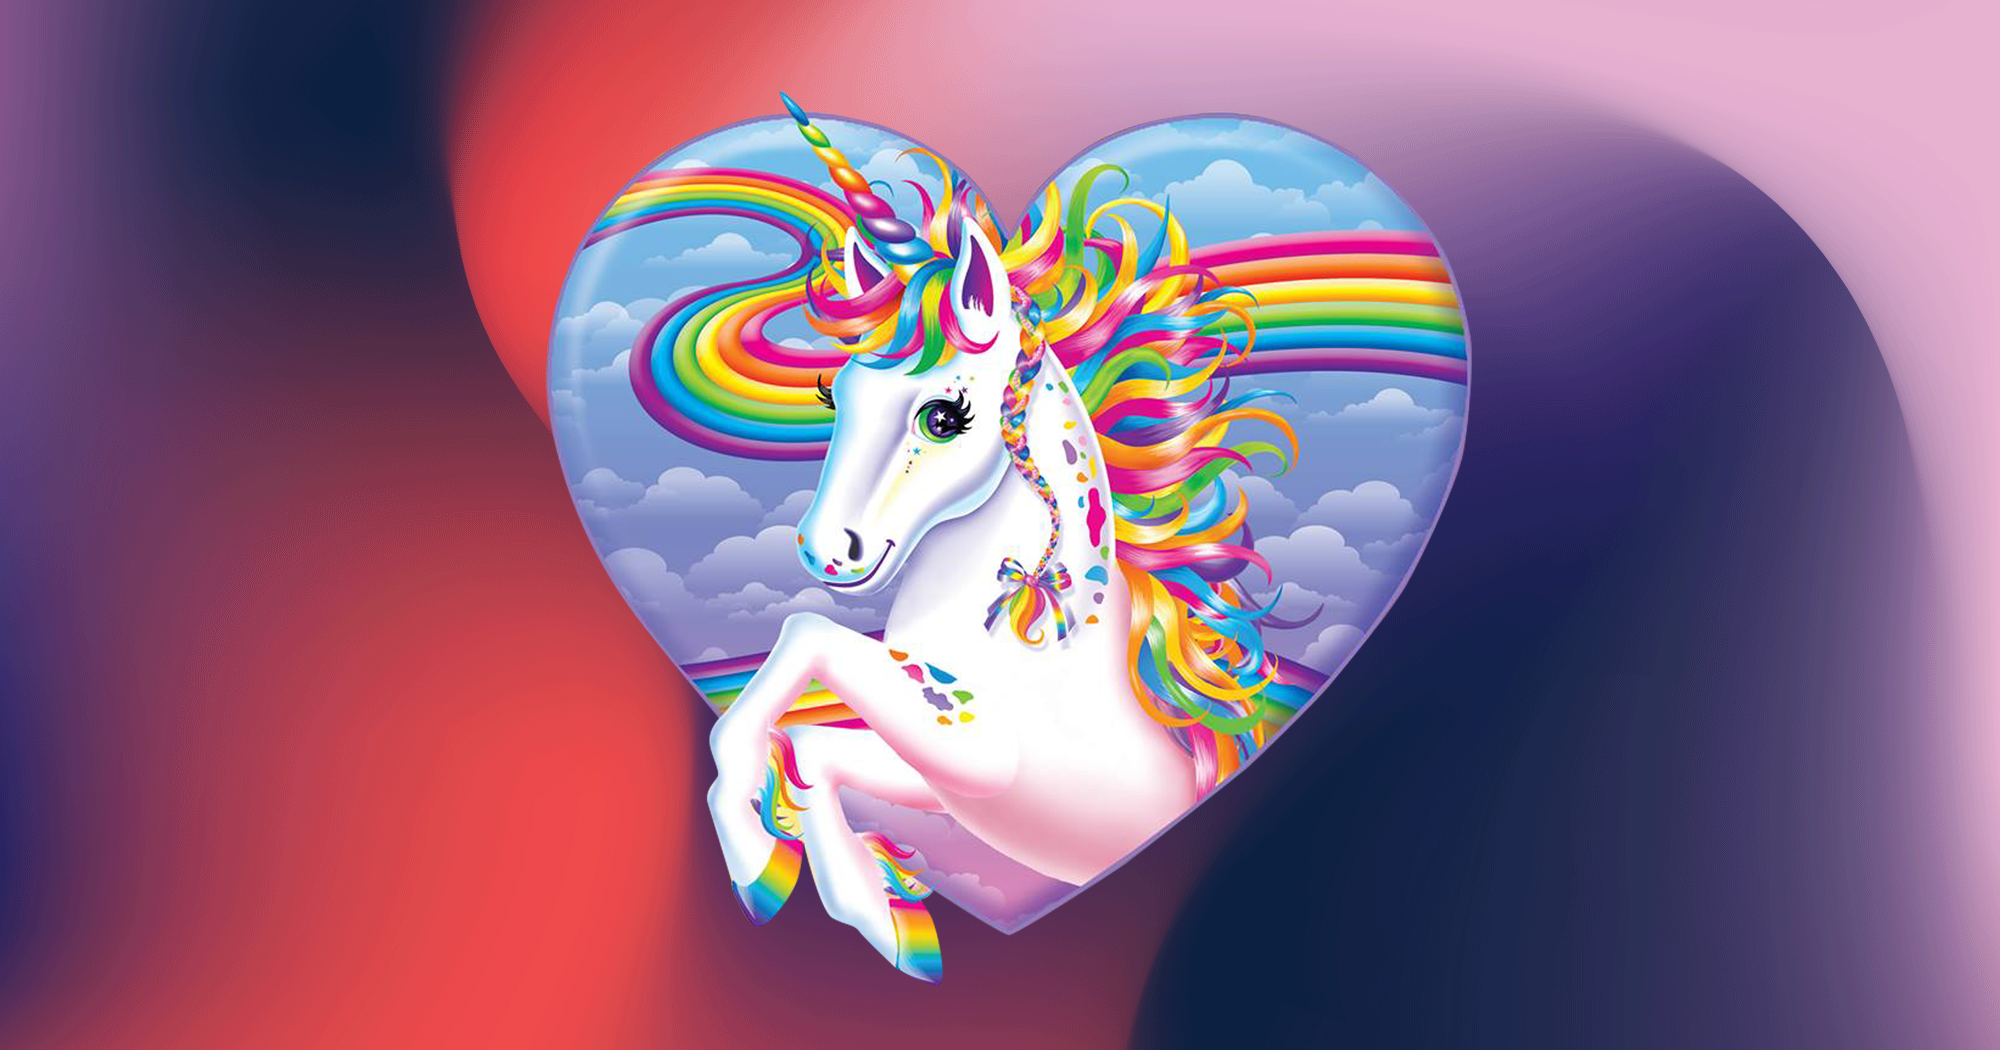 In the '80s and '90s, Lisa Frank was the epitome of cool. Here are a few things you might not have known about the brand, and the woman behind it. 1. THERE'S A REAL PERSON BEHIND LISA FRANK.